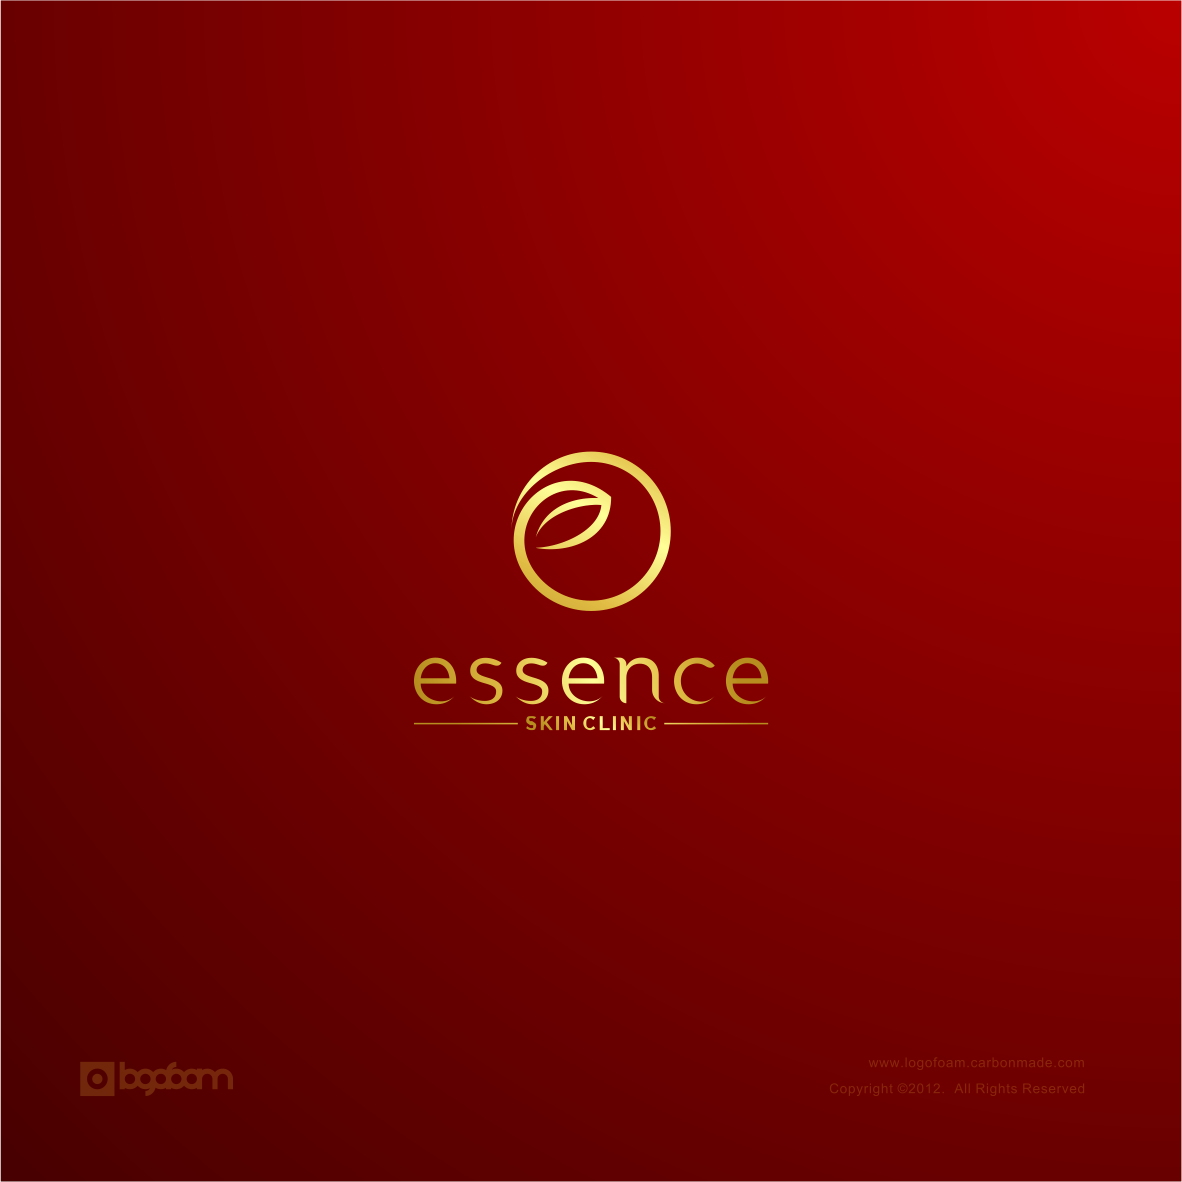 Essence Skin Clinic      Essence Med Spa needs a new logo and business card